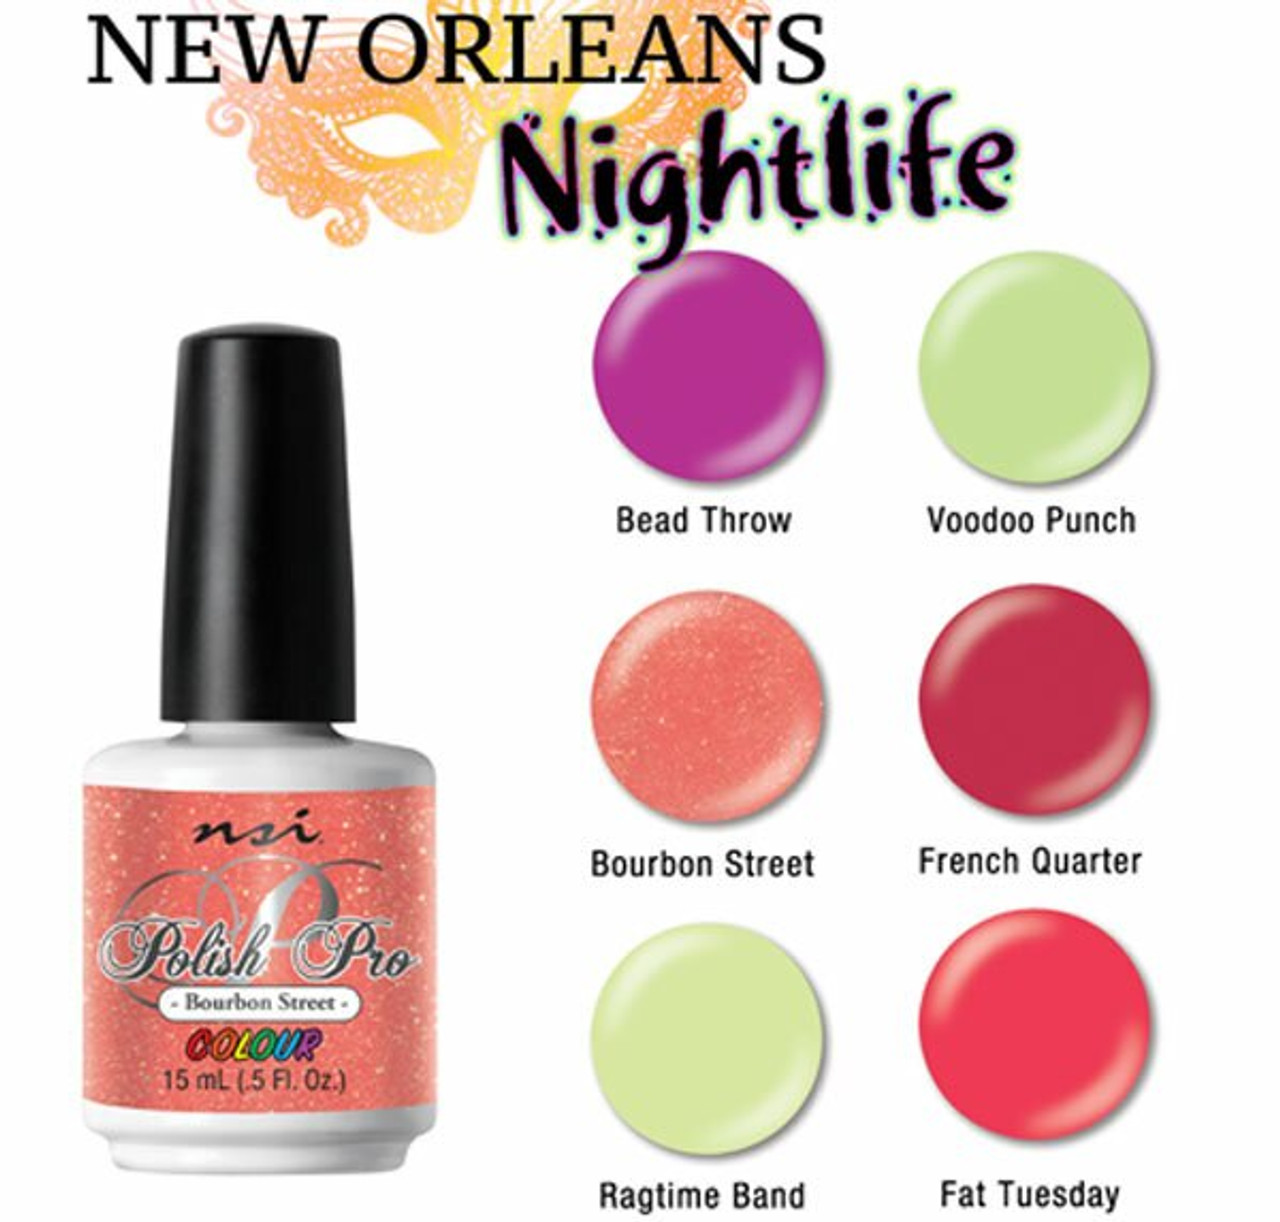 NSI Polish Pro New Orleans Nightlife Collection 2018 - 6pc